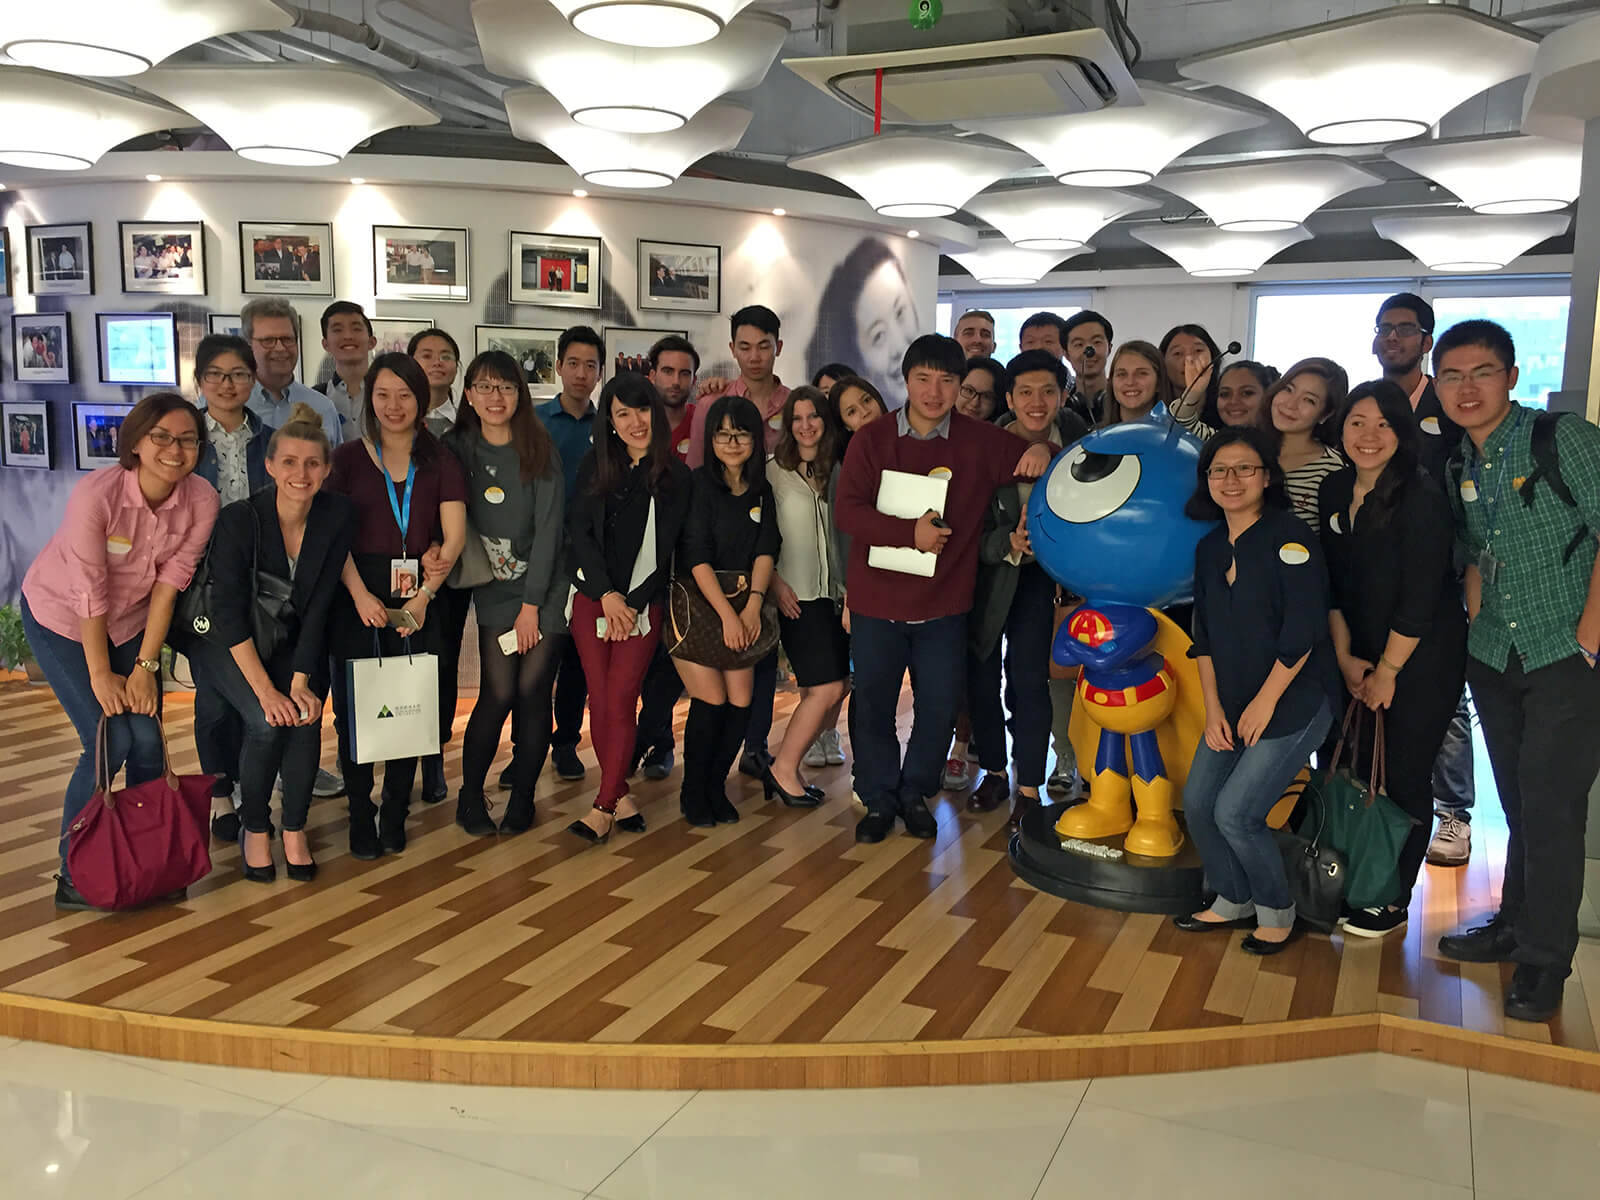 Our class at the corporate visit to Ant Financial - consulting projects